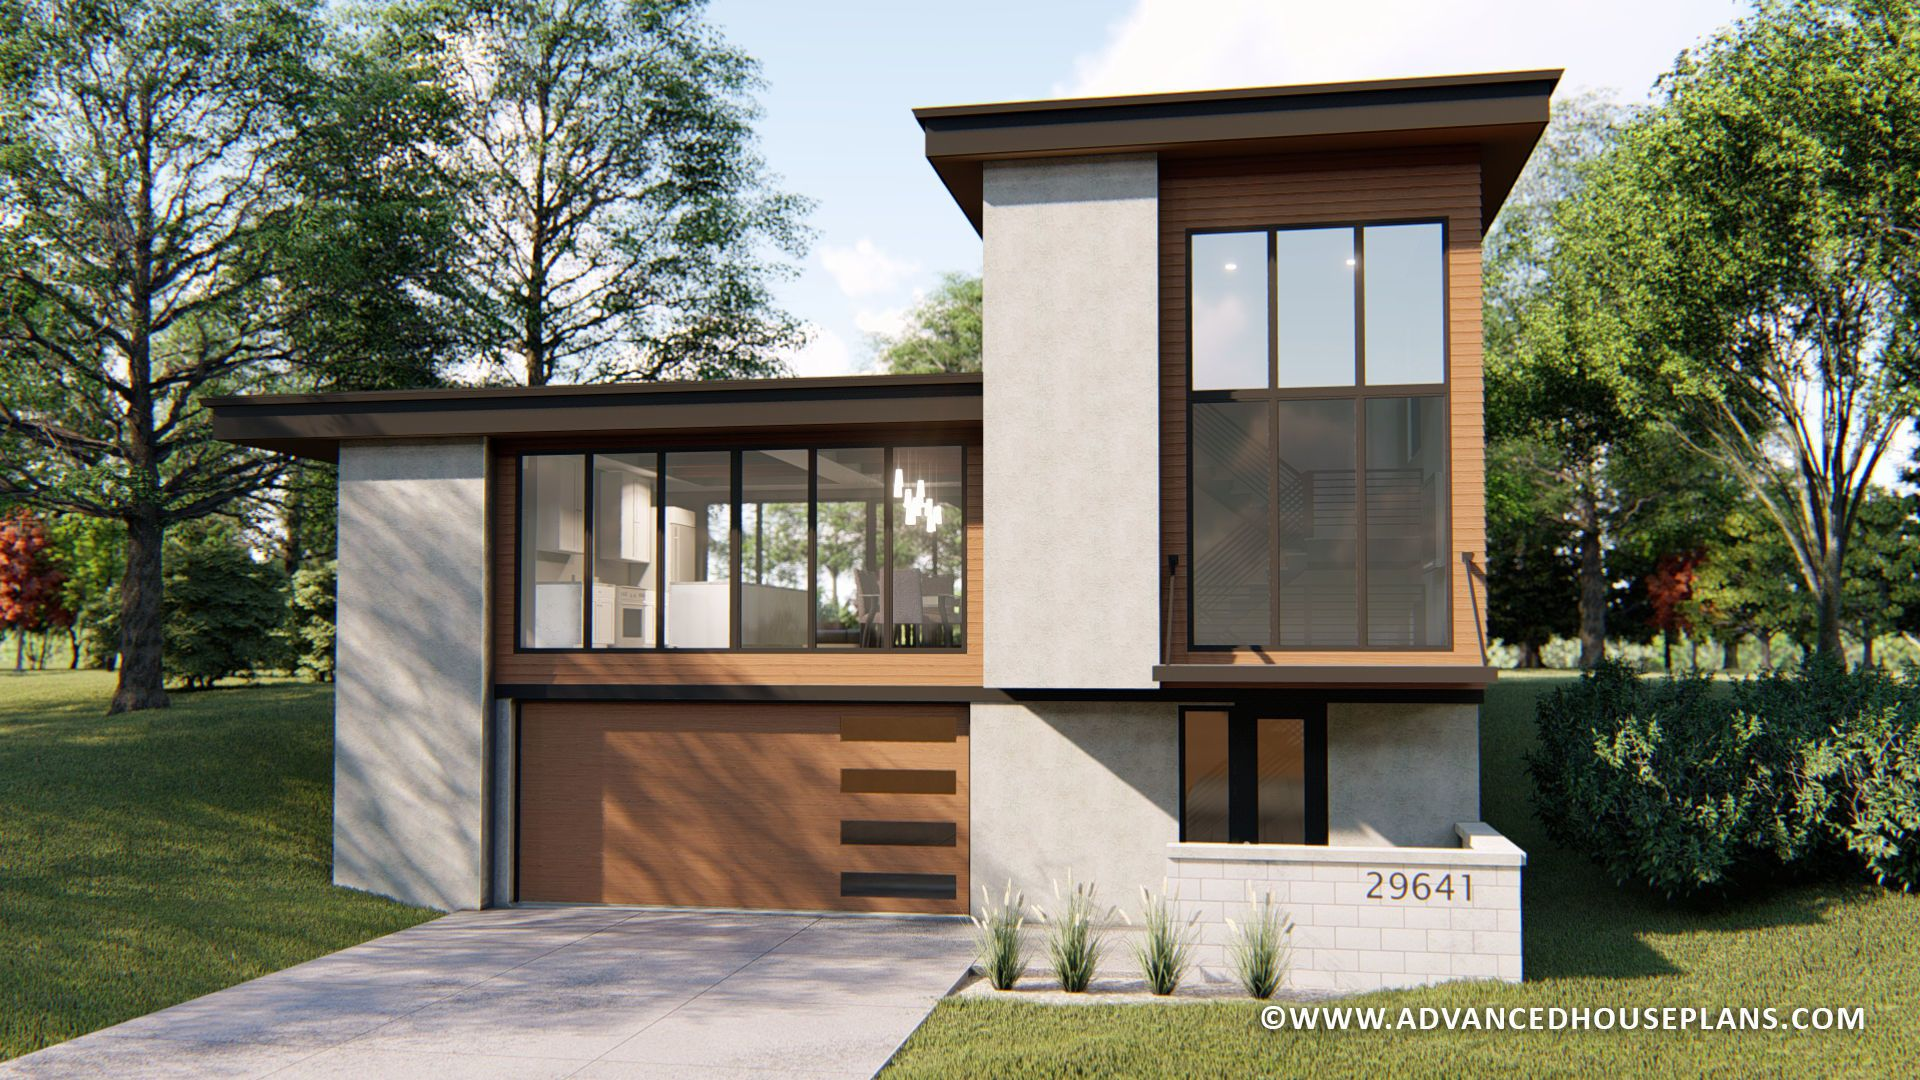 1 5 Story Modern House Plan Aubrey Courtyard House Plans Contemporary House Plans Modern House Plan